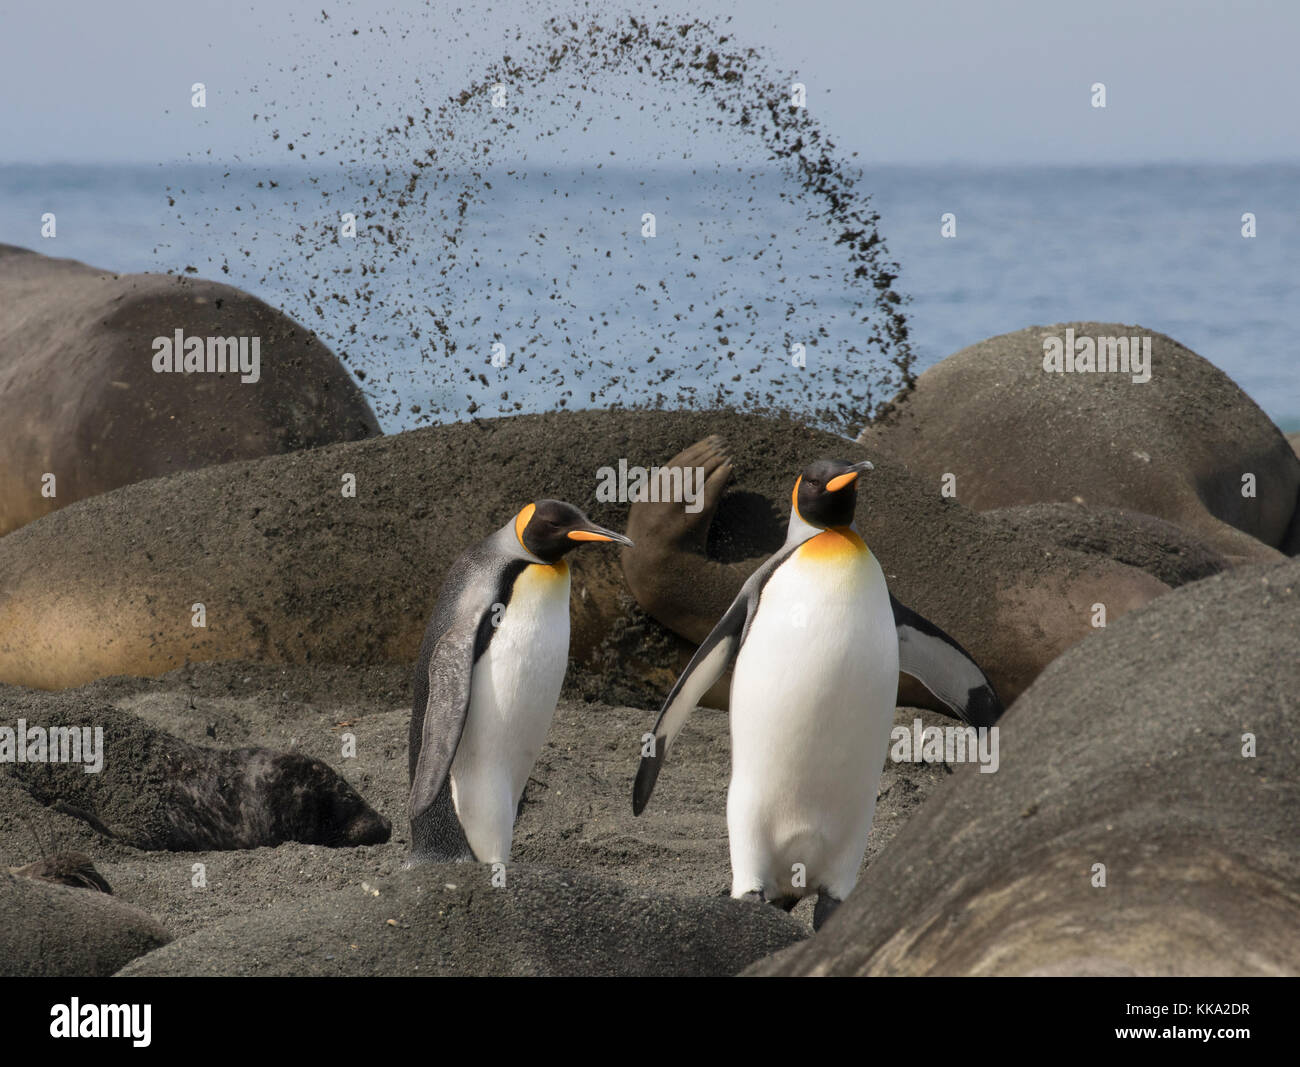 Resting elephant seal flips sand into the air as two king penguins walk by on beach at Gold Harbour, South Georgia - Stock Image